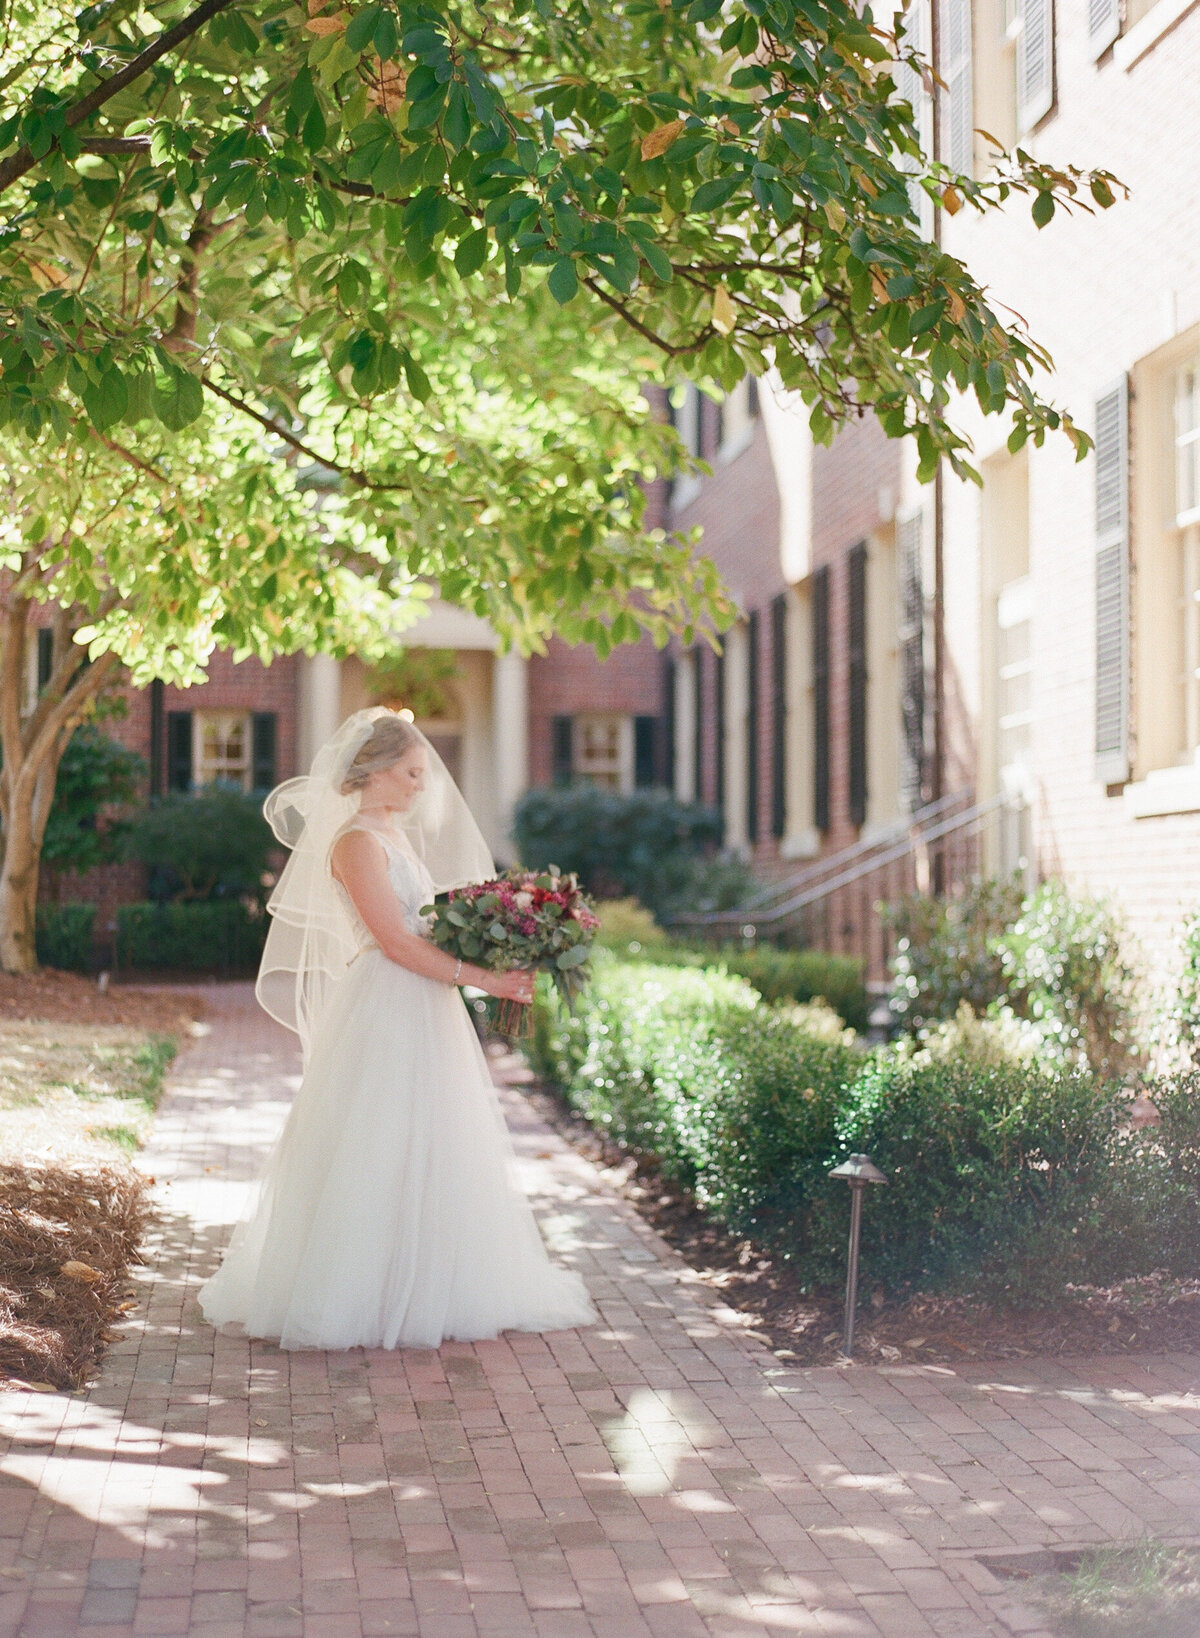 Wedding Photography at The Carolina Inn in Chapel Hill, NC 13